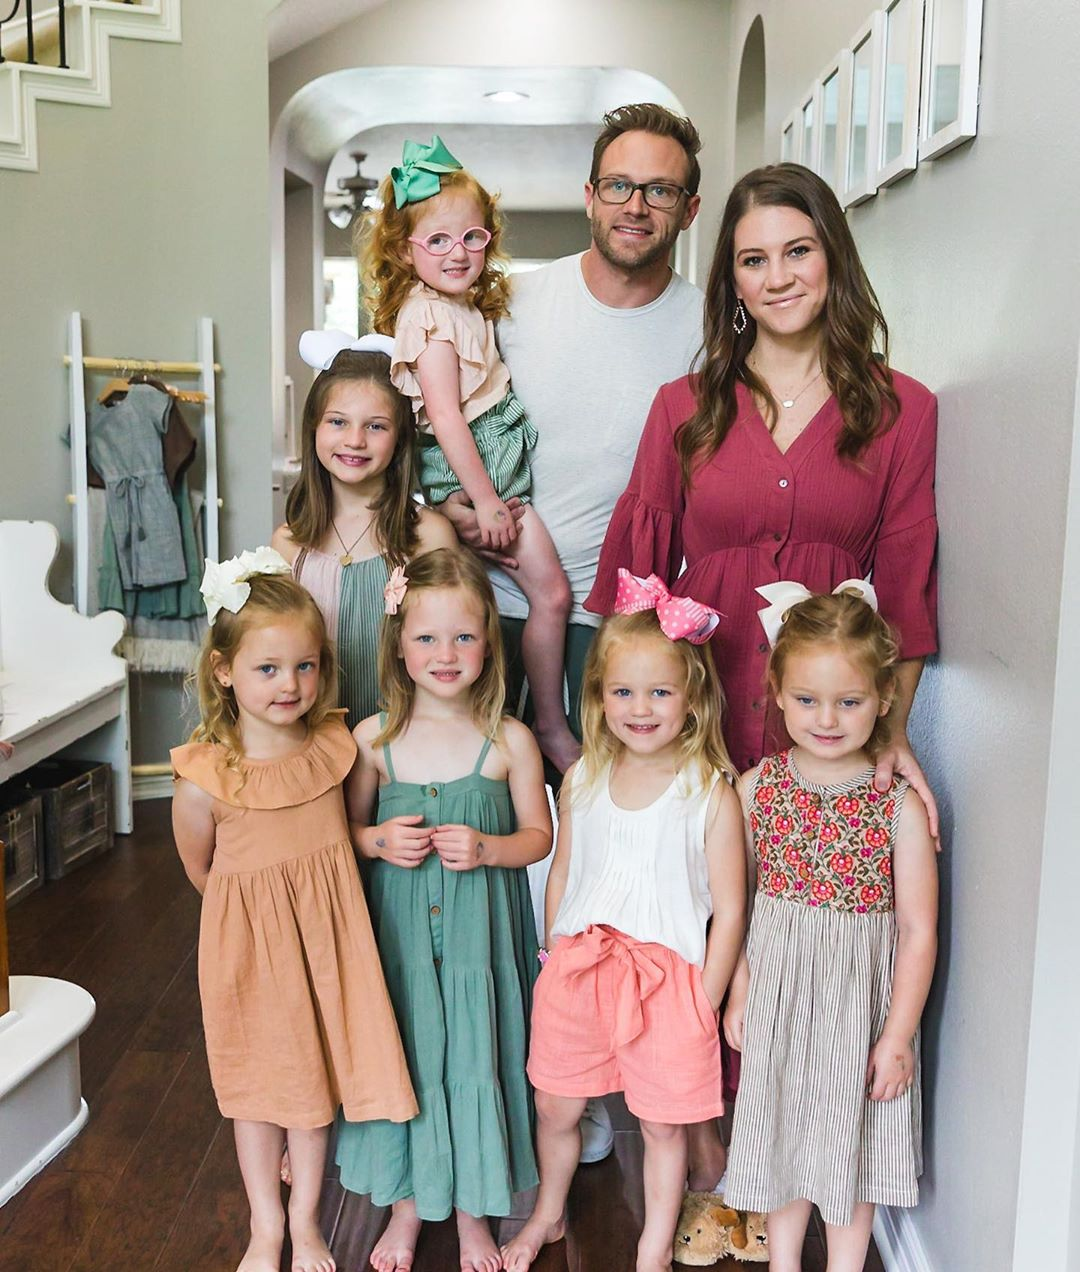 OutDaughtered Danielle Busby goes rogue Just Say No!